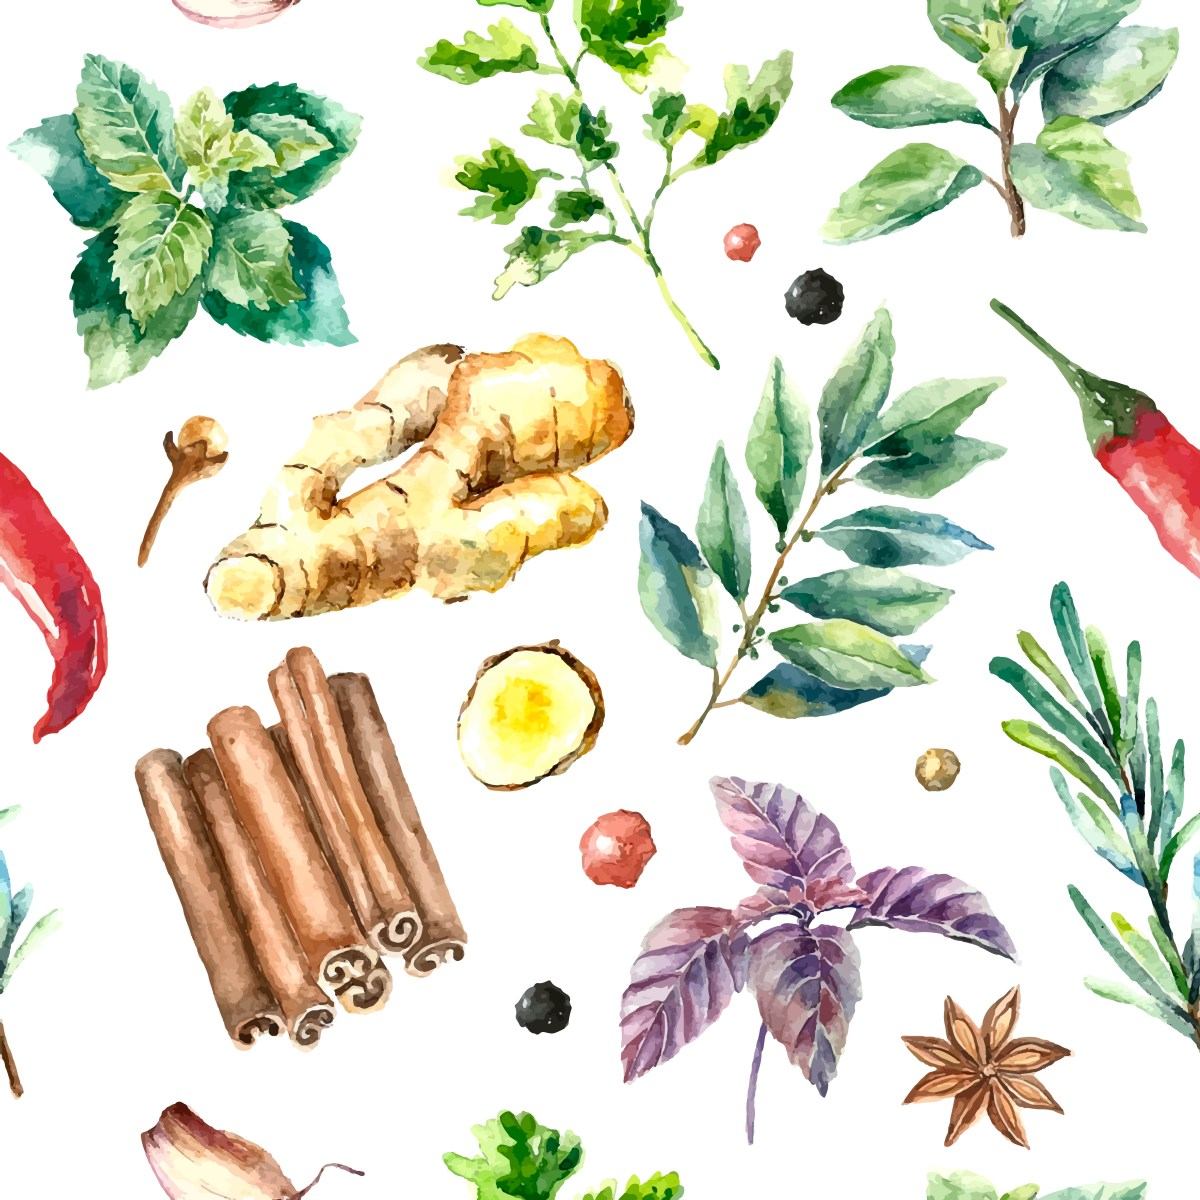 Herbs-and-spices-ill.jpg?fit=1200%2C1200&ssl=1